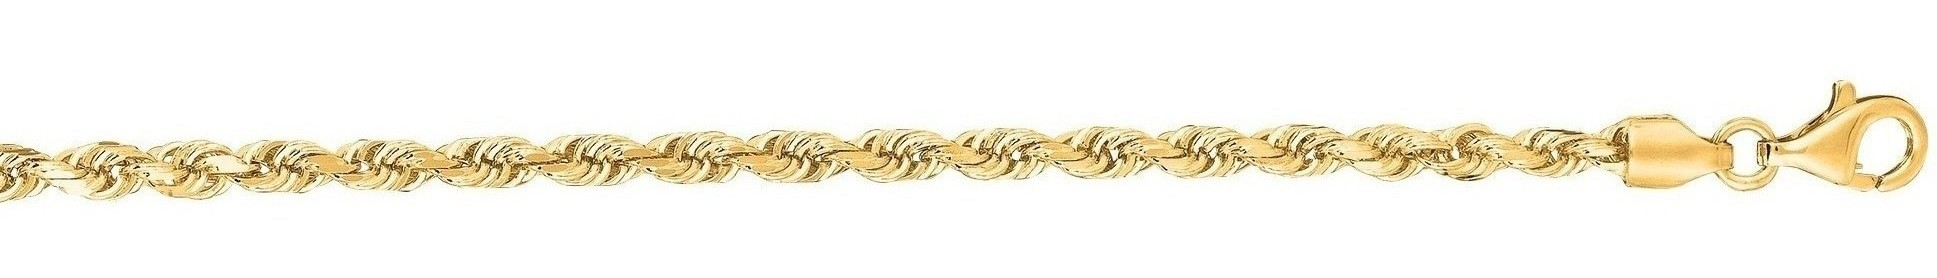 "24"" 14K Yellow Gold 3.0mm (1/8"") Polished Solid Diamond Cut Royal Rope Chain w/ Pear Shape Clasp"